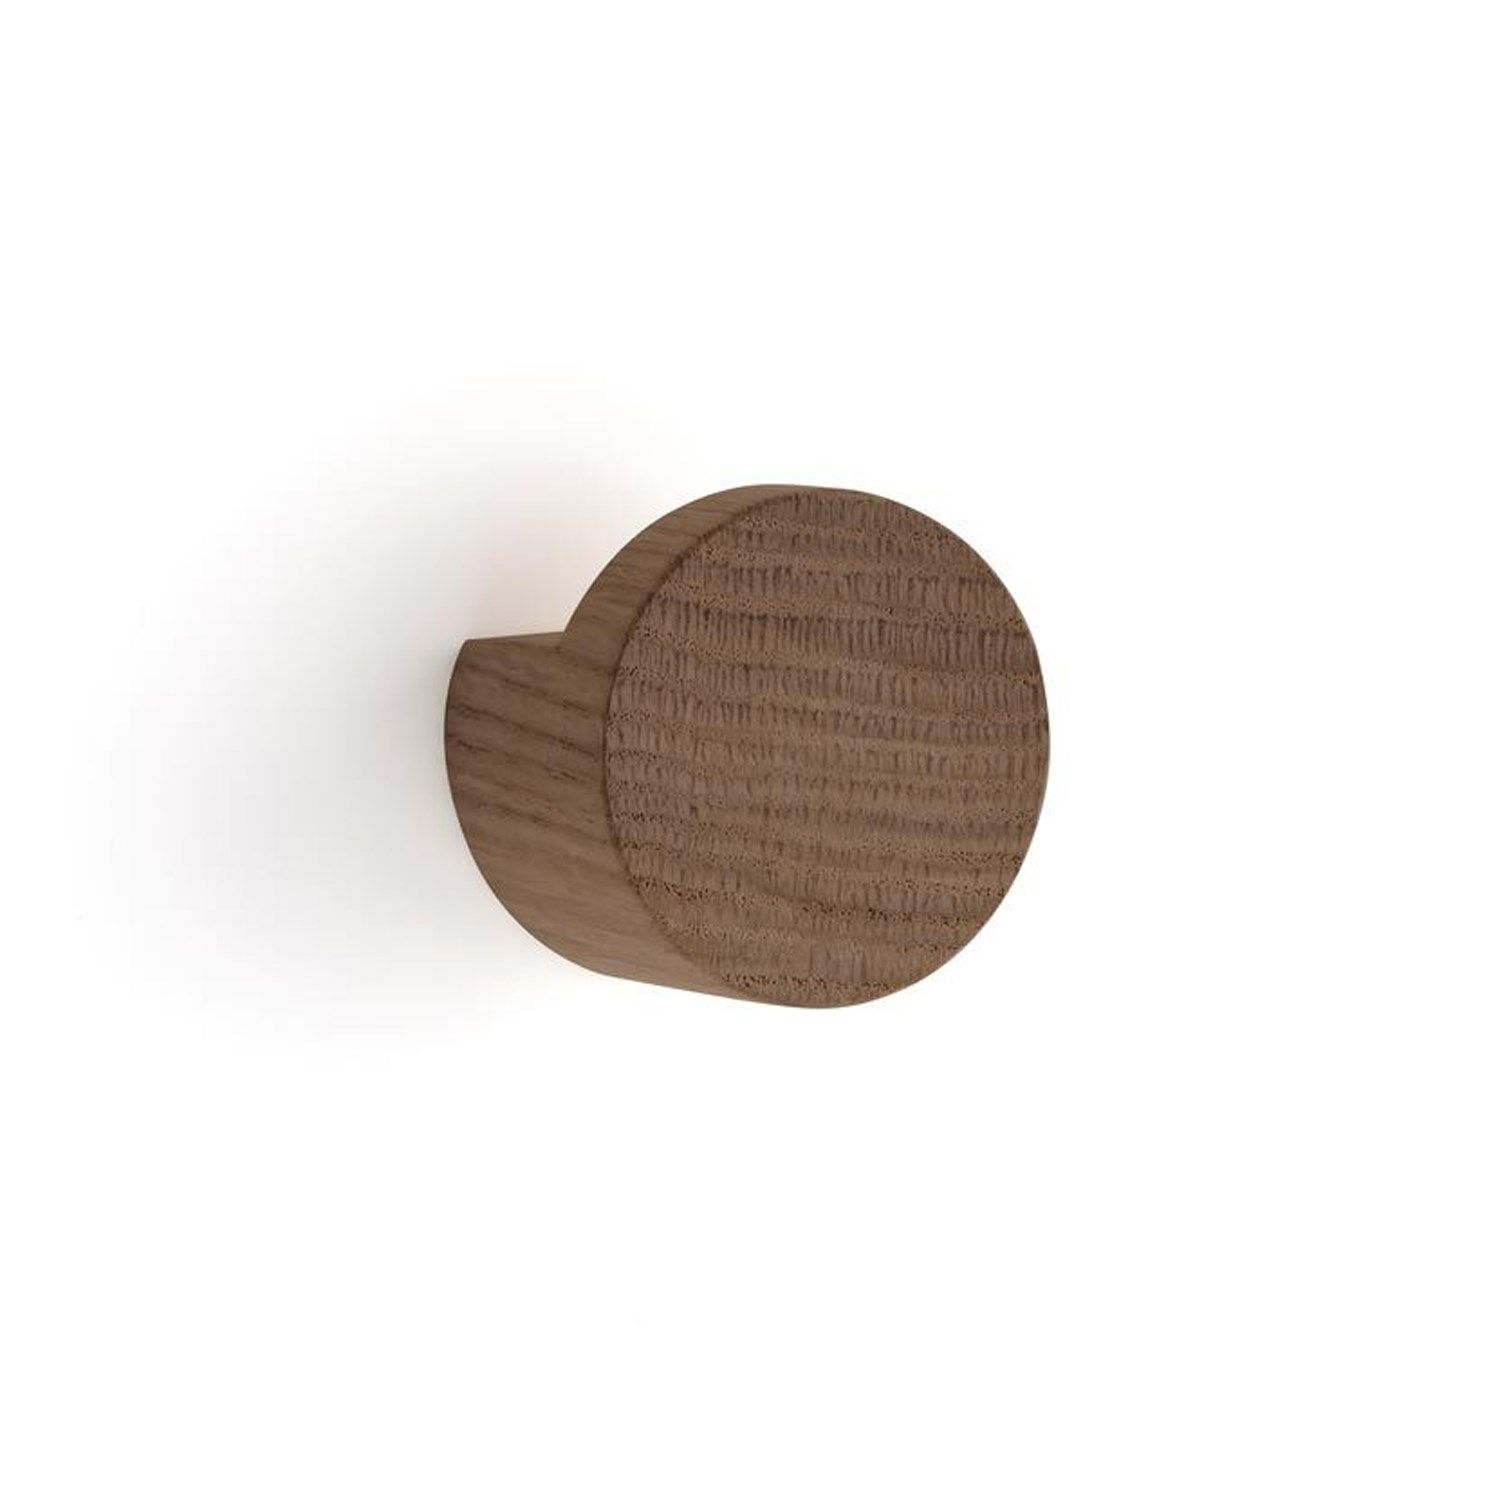 By Wirth - Knager i røget eg - Wood Knot - Medium